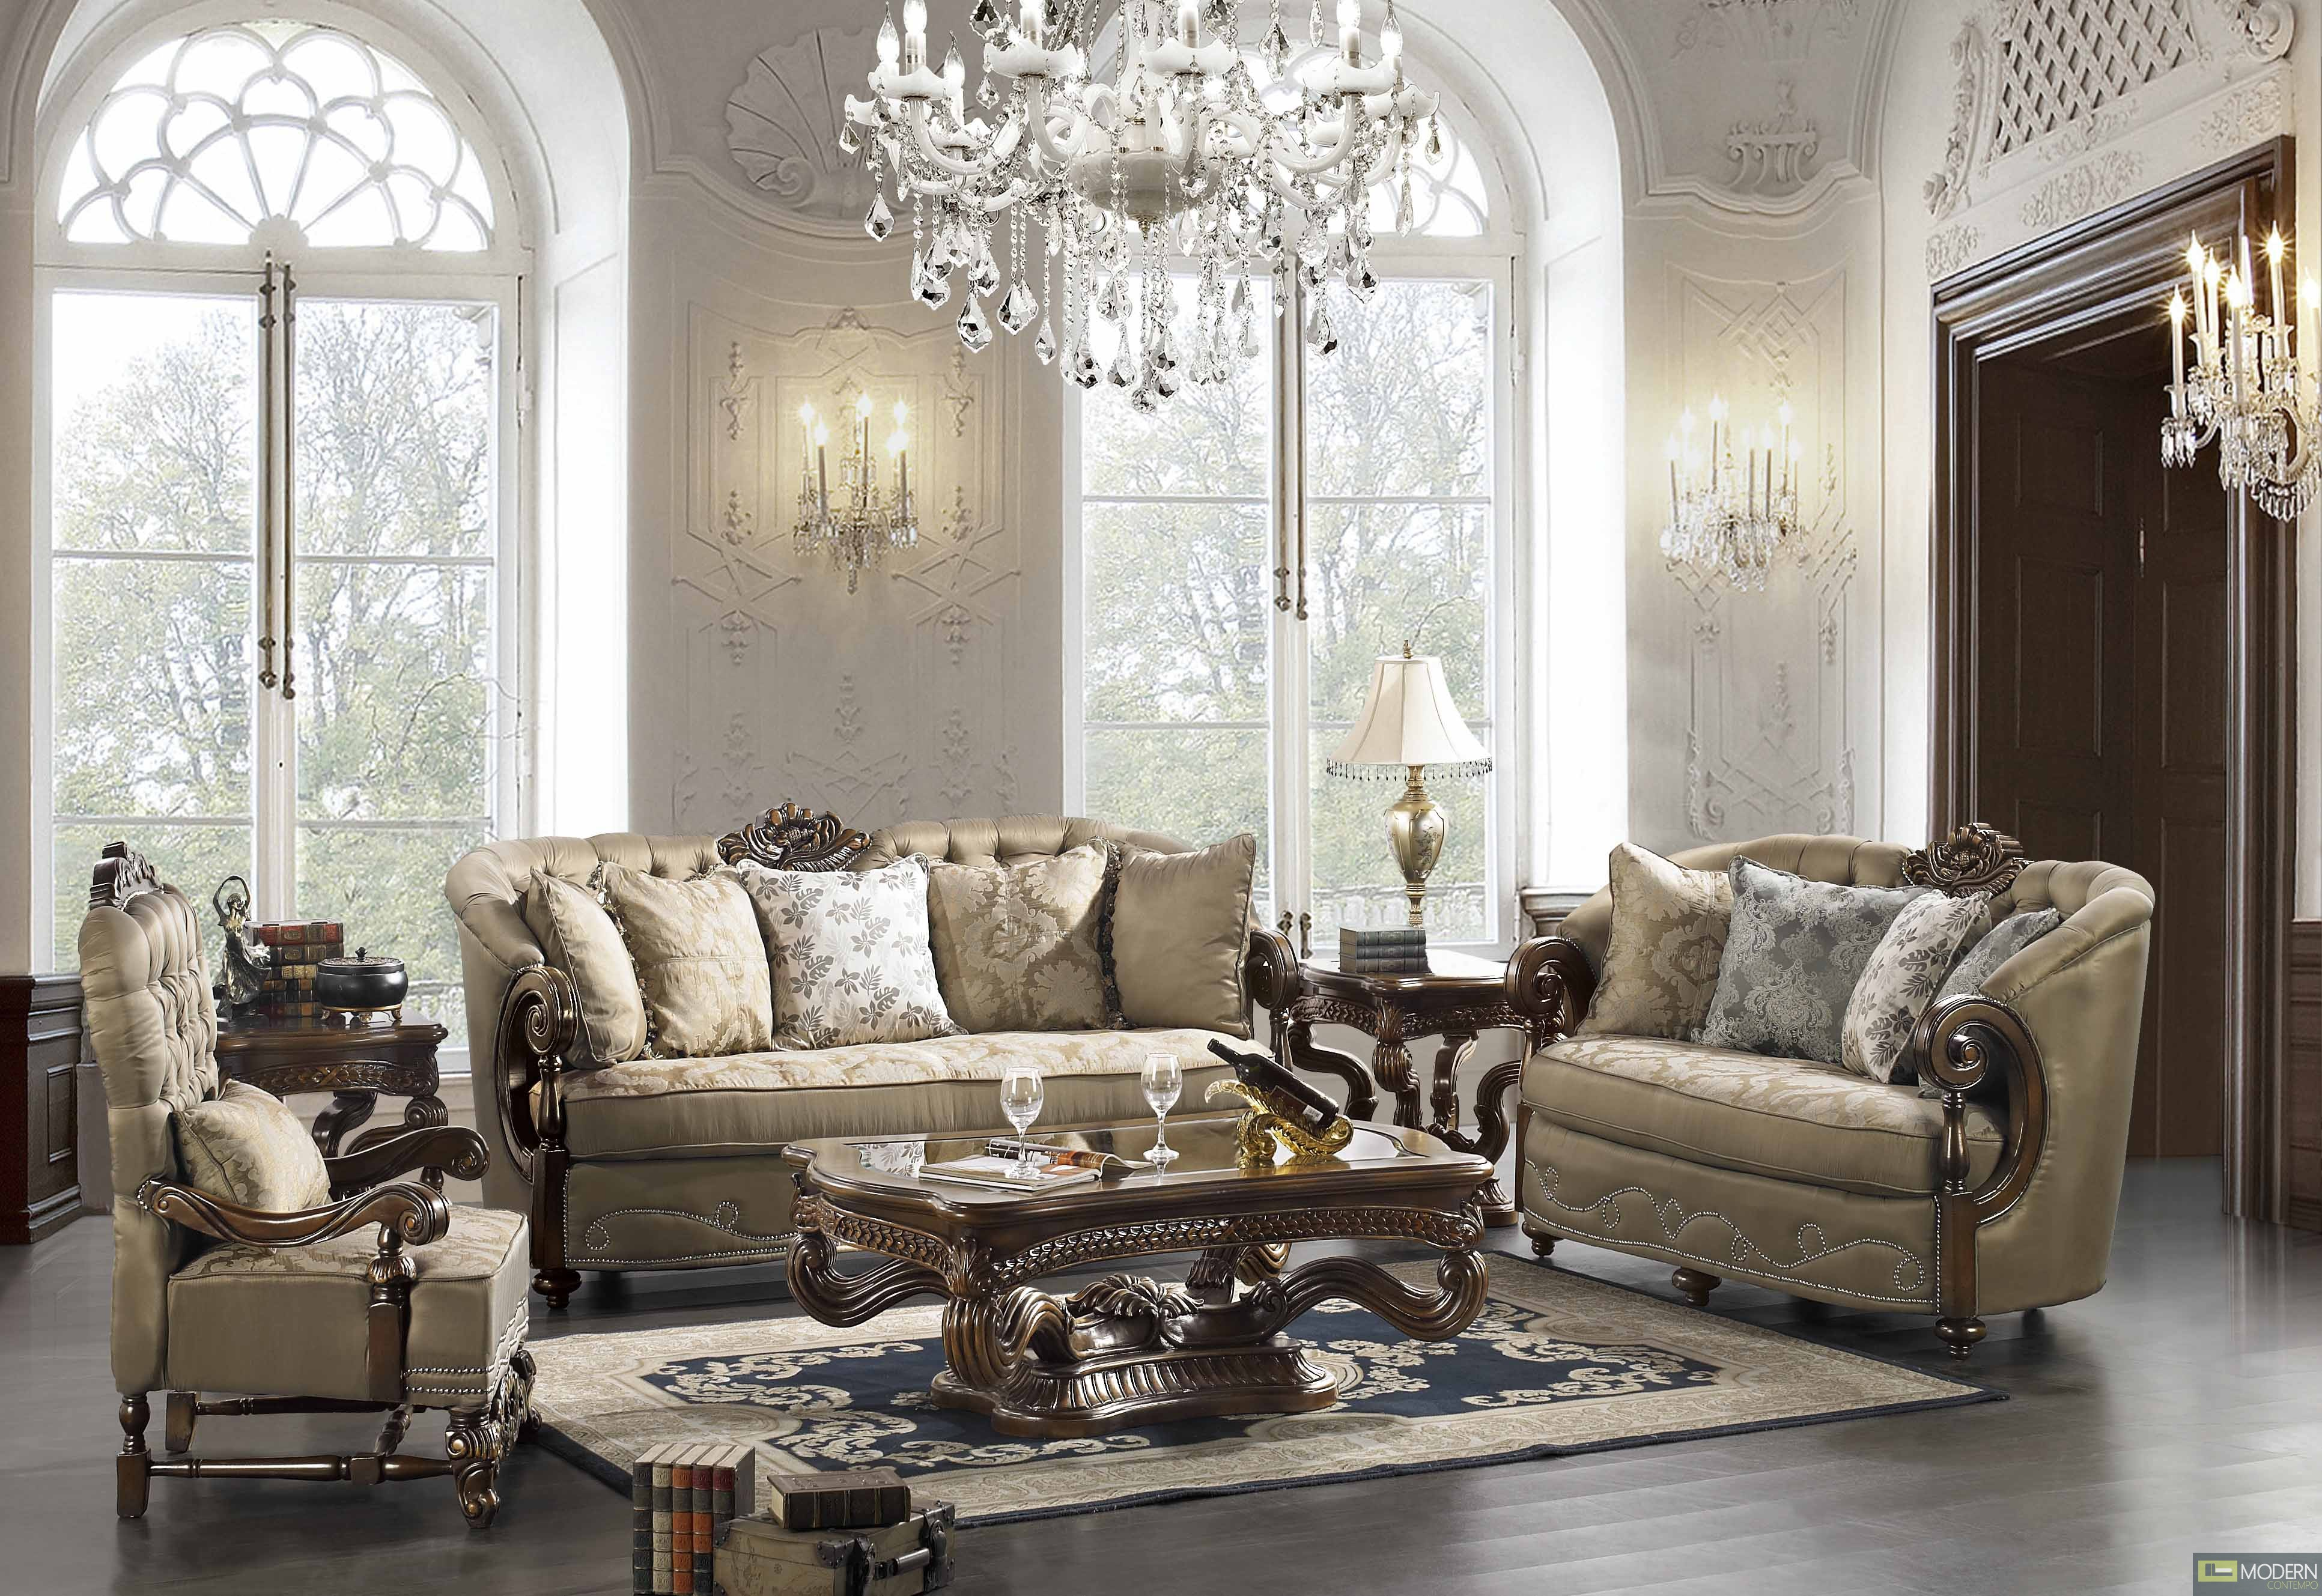 Elegant traditional formal living room furniture Glamorous living room furniture